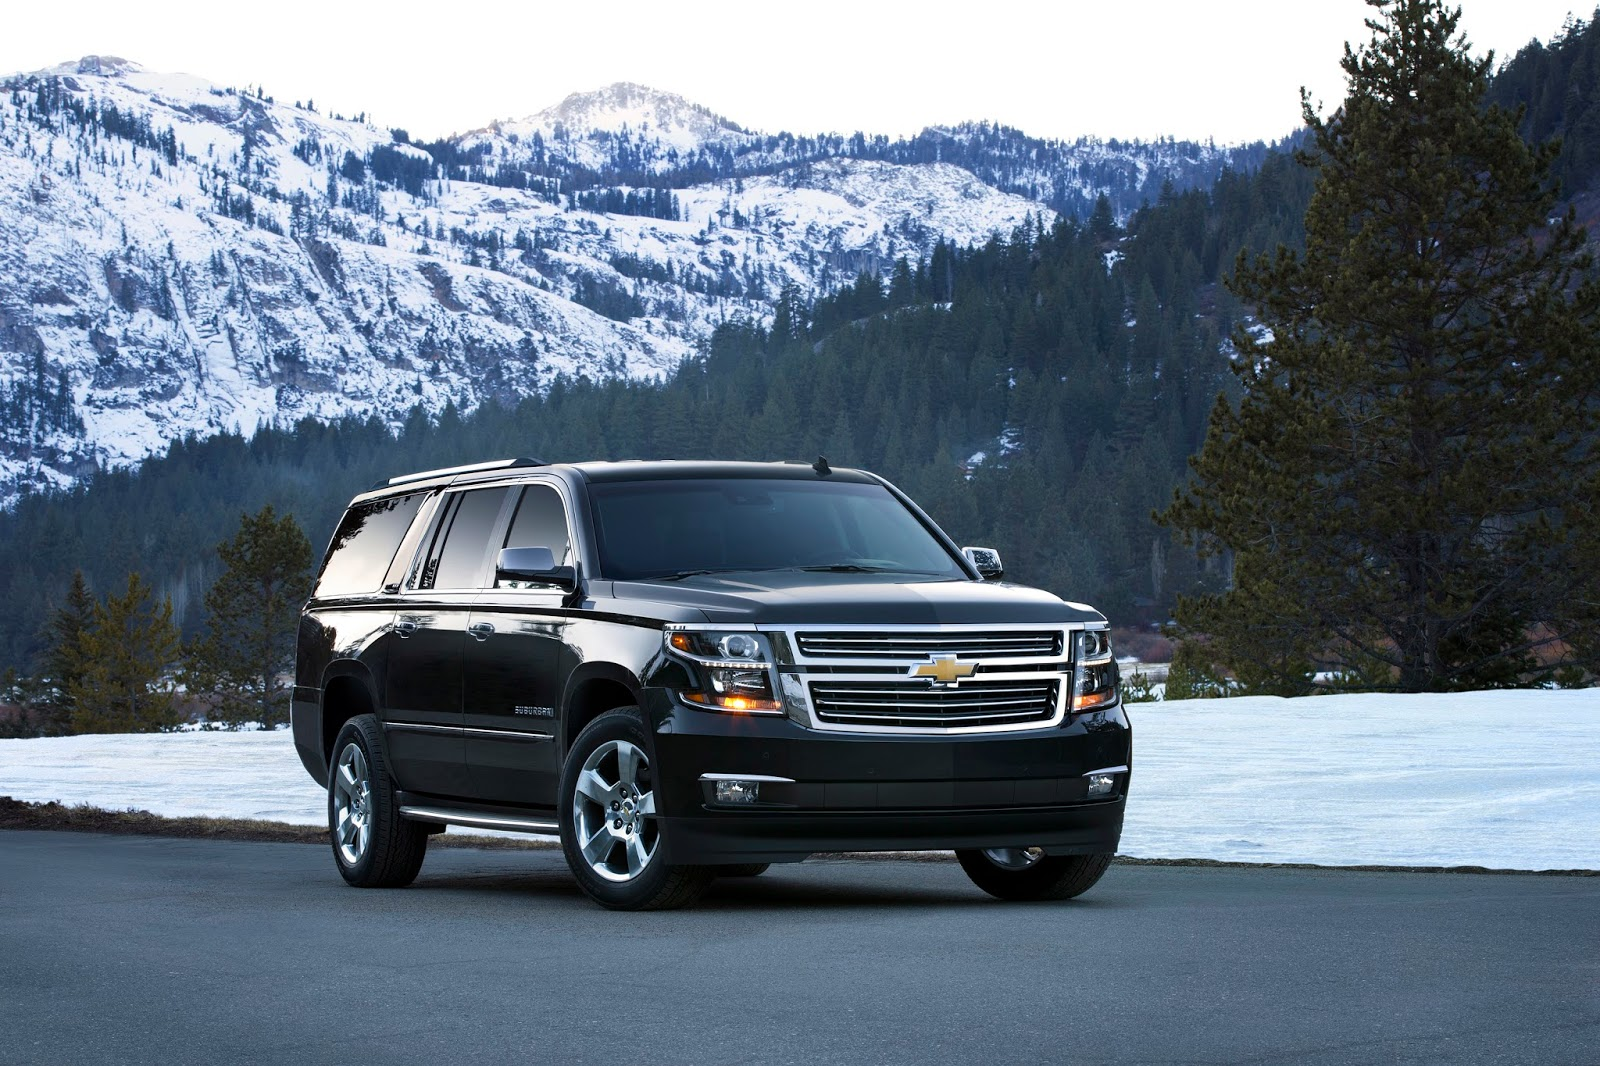 2015 Chevy Tahoe and Suburban Get Better Gas Mileage